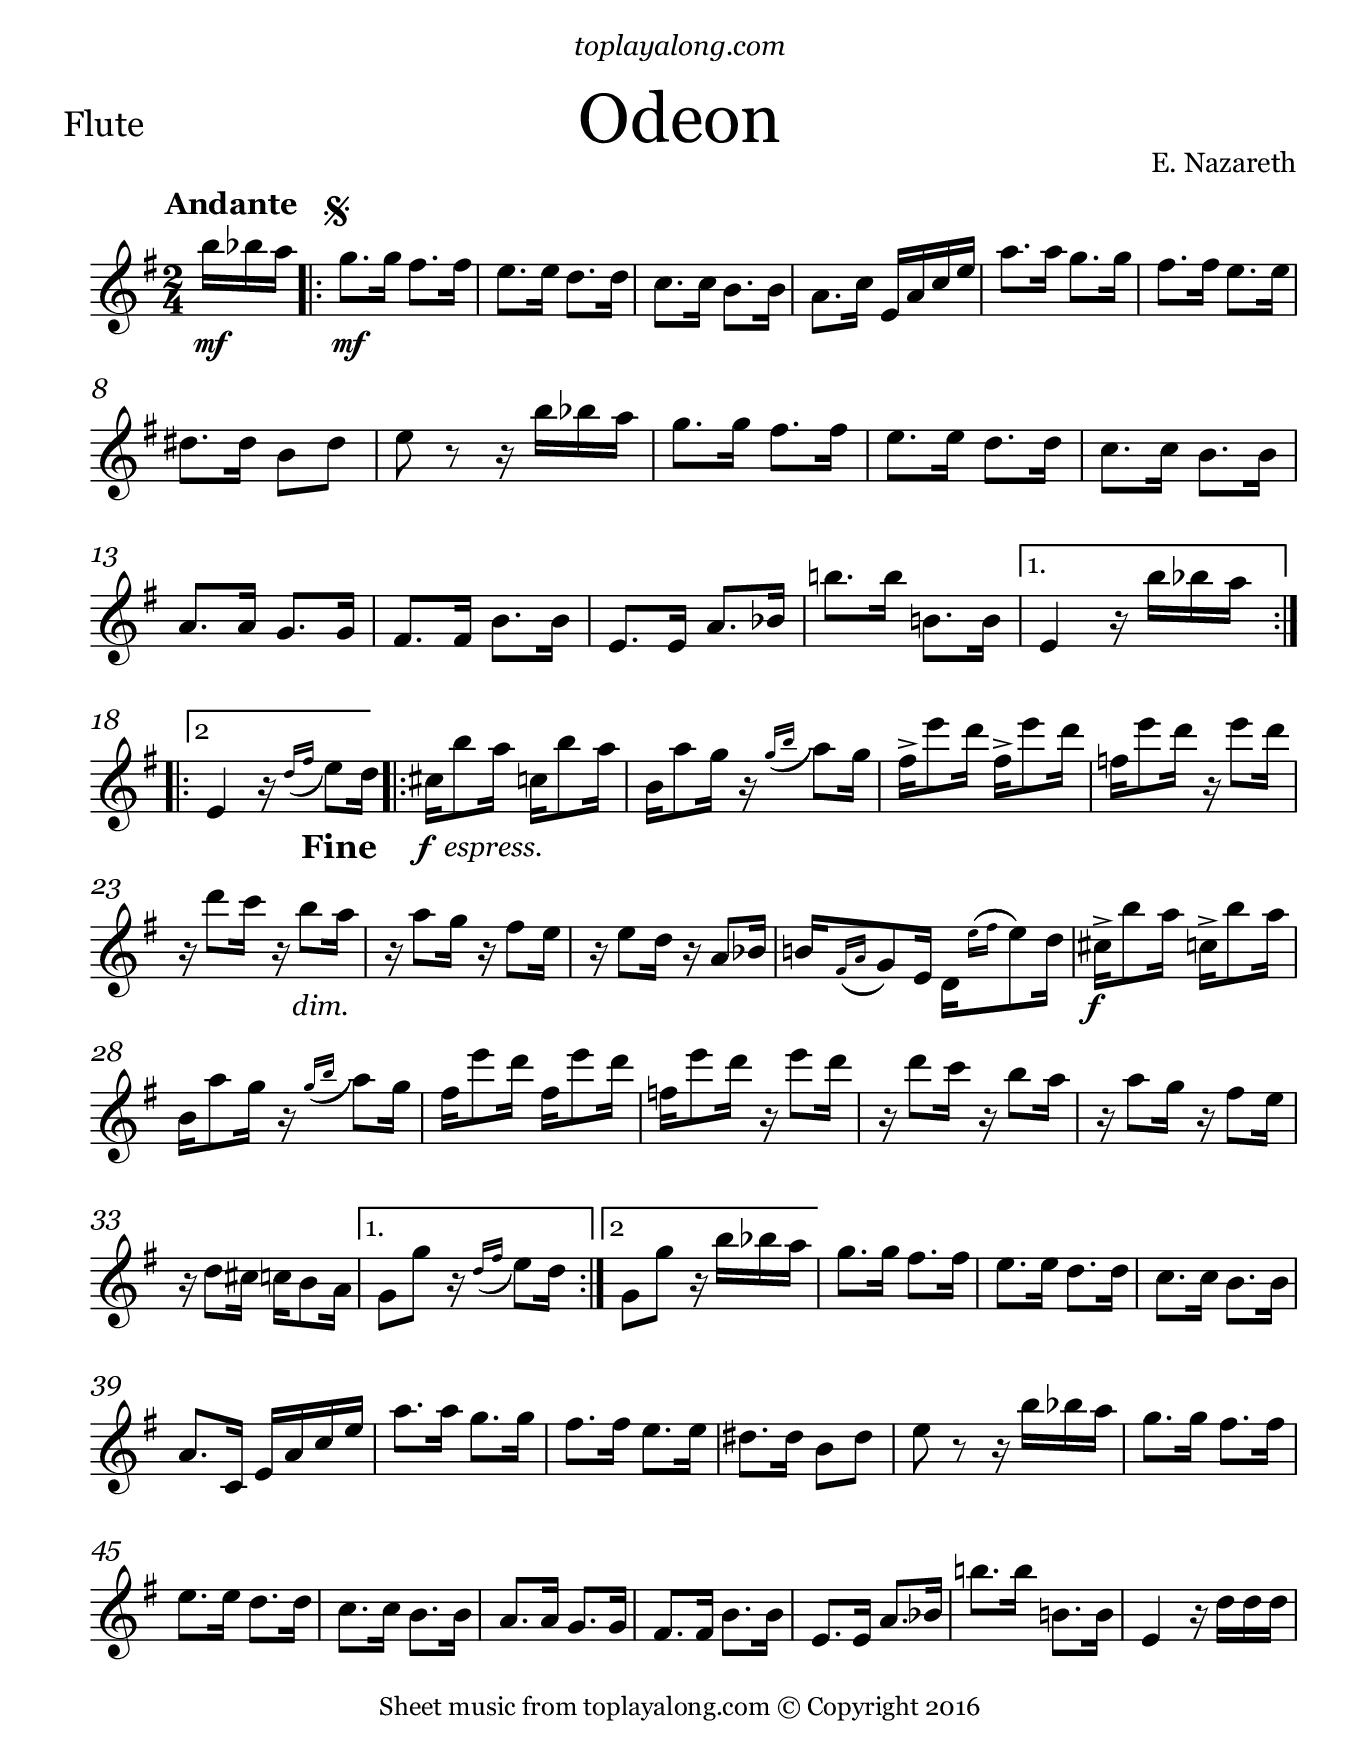 Odeon by Nazareth. Sheet music for Flute, page 1.